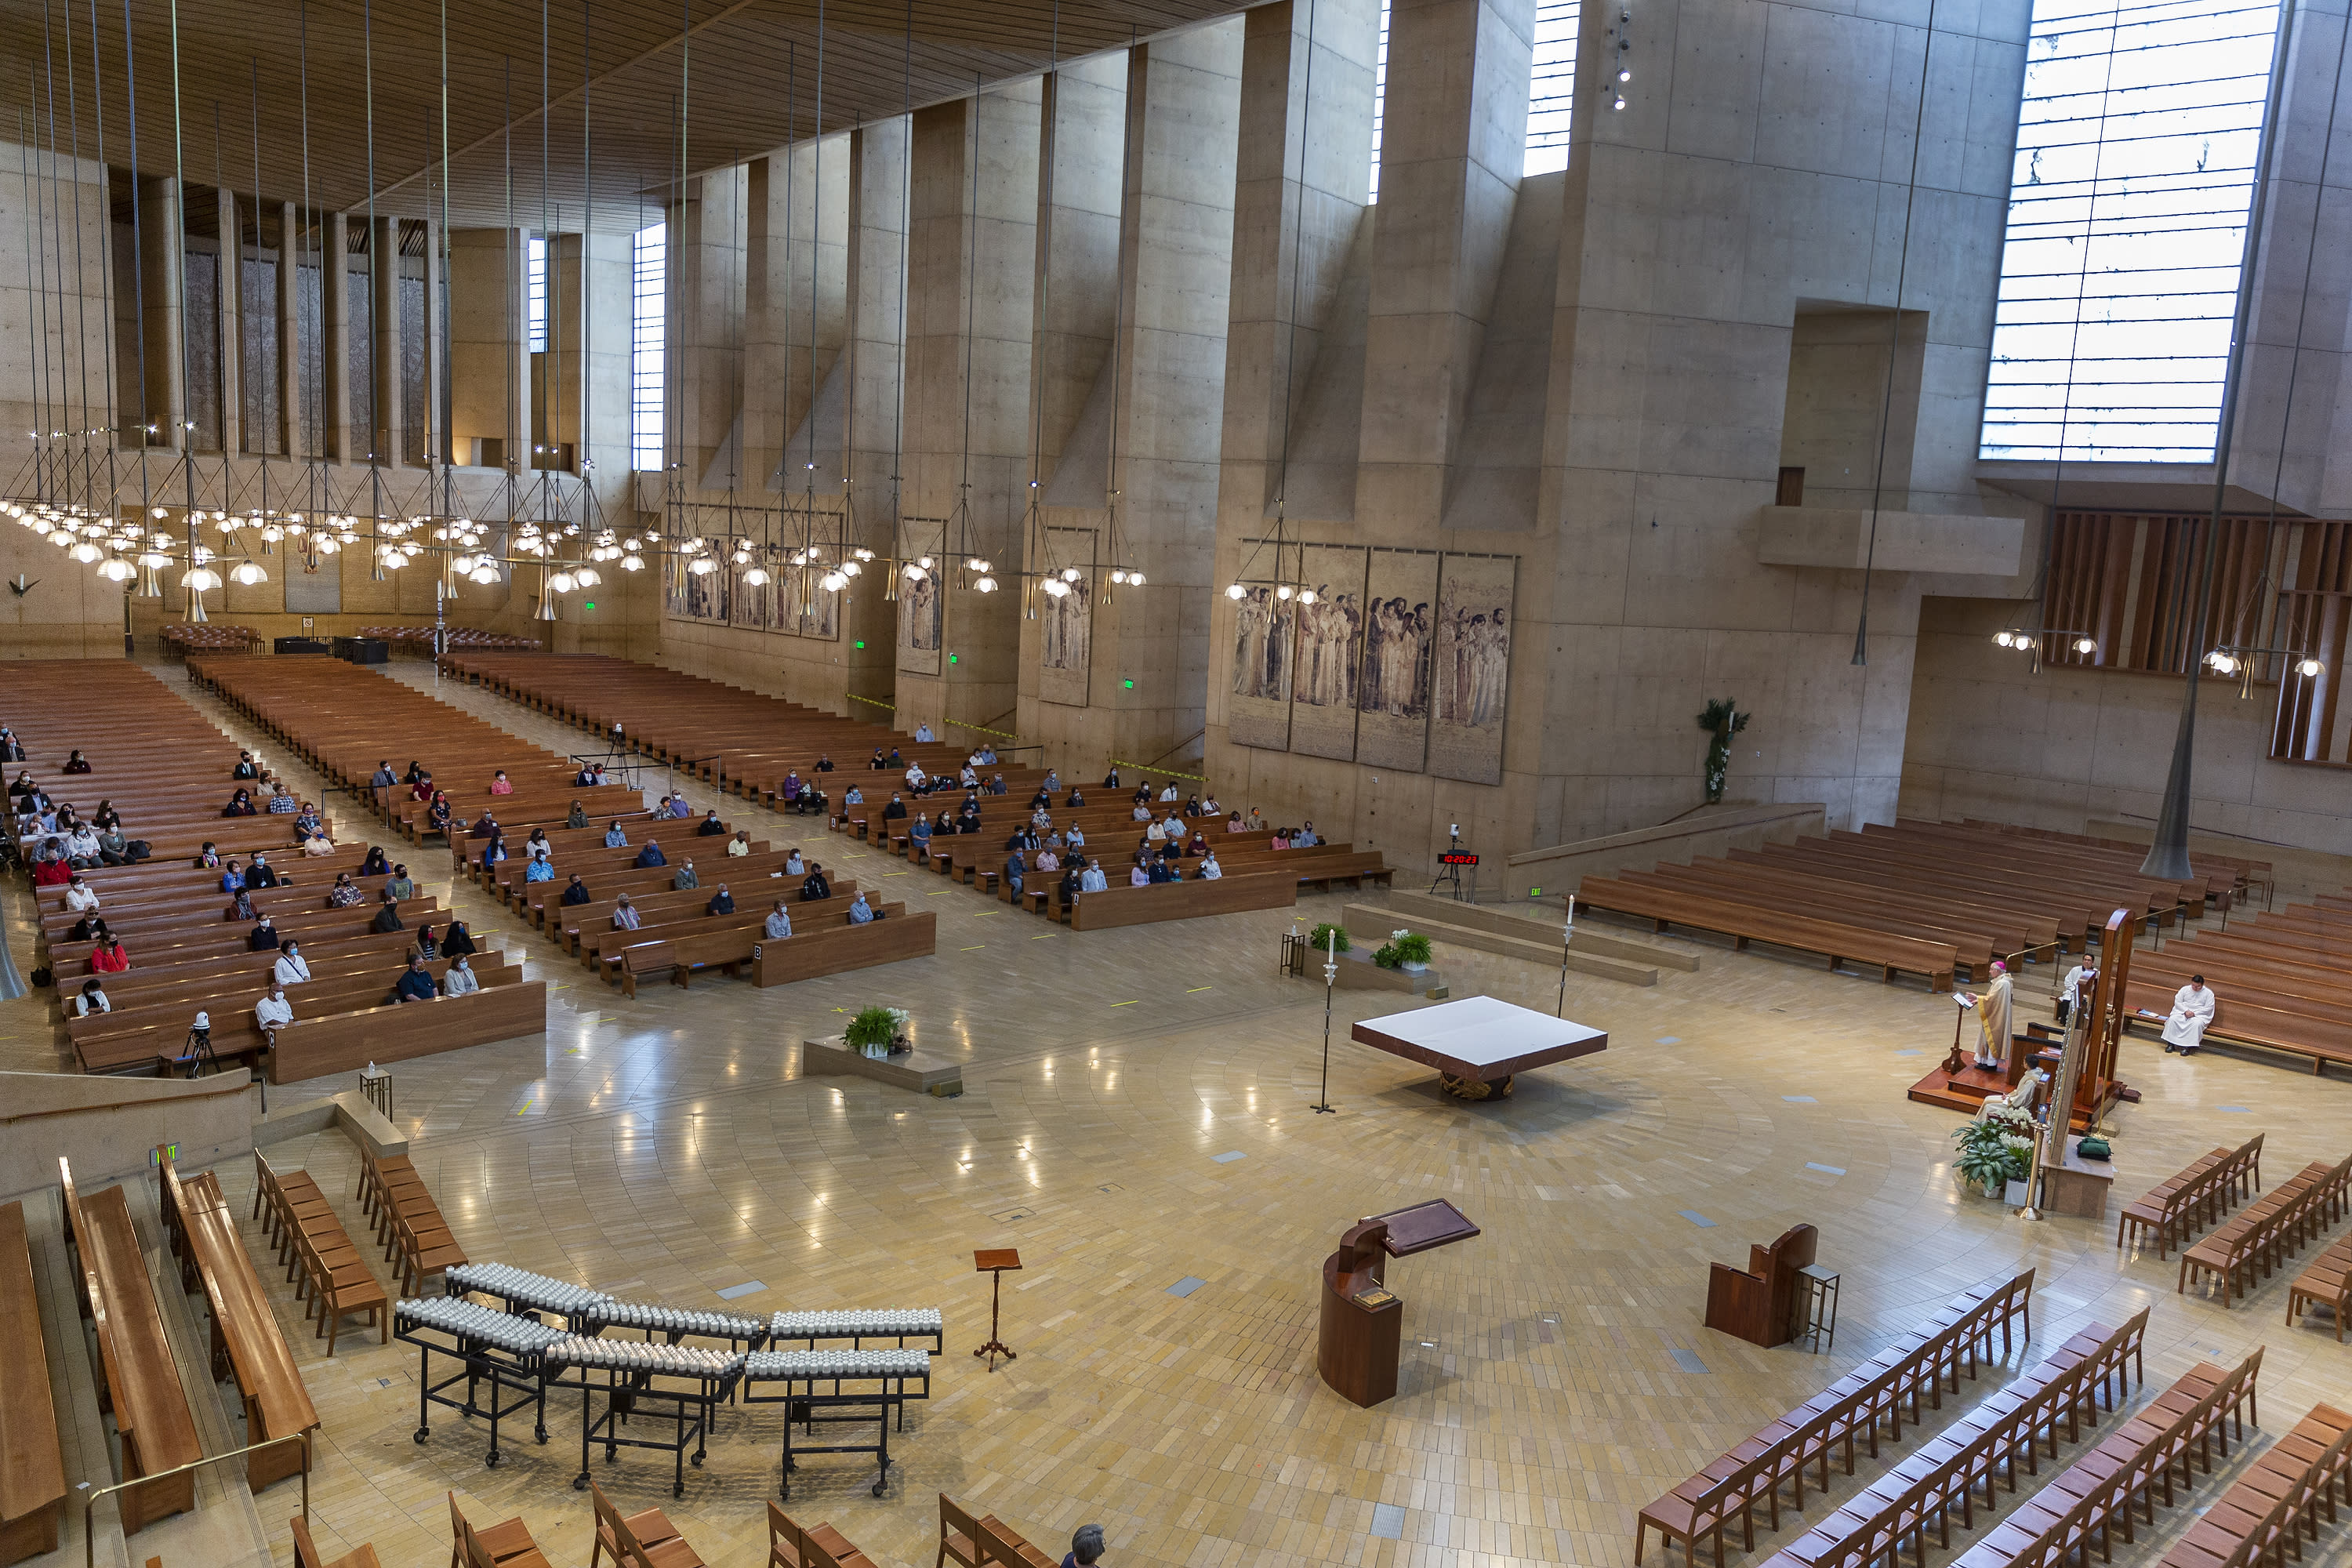 FILE - Los Angeles Archbishop Jose H. Gomez celebrates the first English Mass with the faithful present, at the nation's largest Catholic Archdiocese in Los Angeles, Sunday, June 7, 2020. A religious freedom law firm with ties to President Donald Trump says it will sue California over its recent ban on singing or chanting in the church to slow the spread of the coronavirus. (AP Photo/Damian Dovarganes, File)